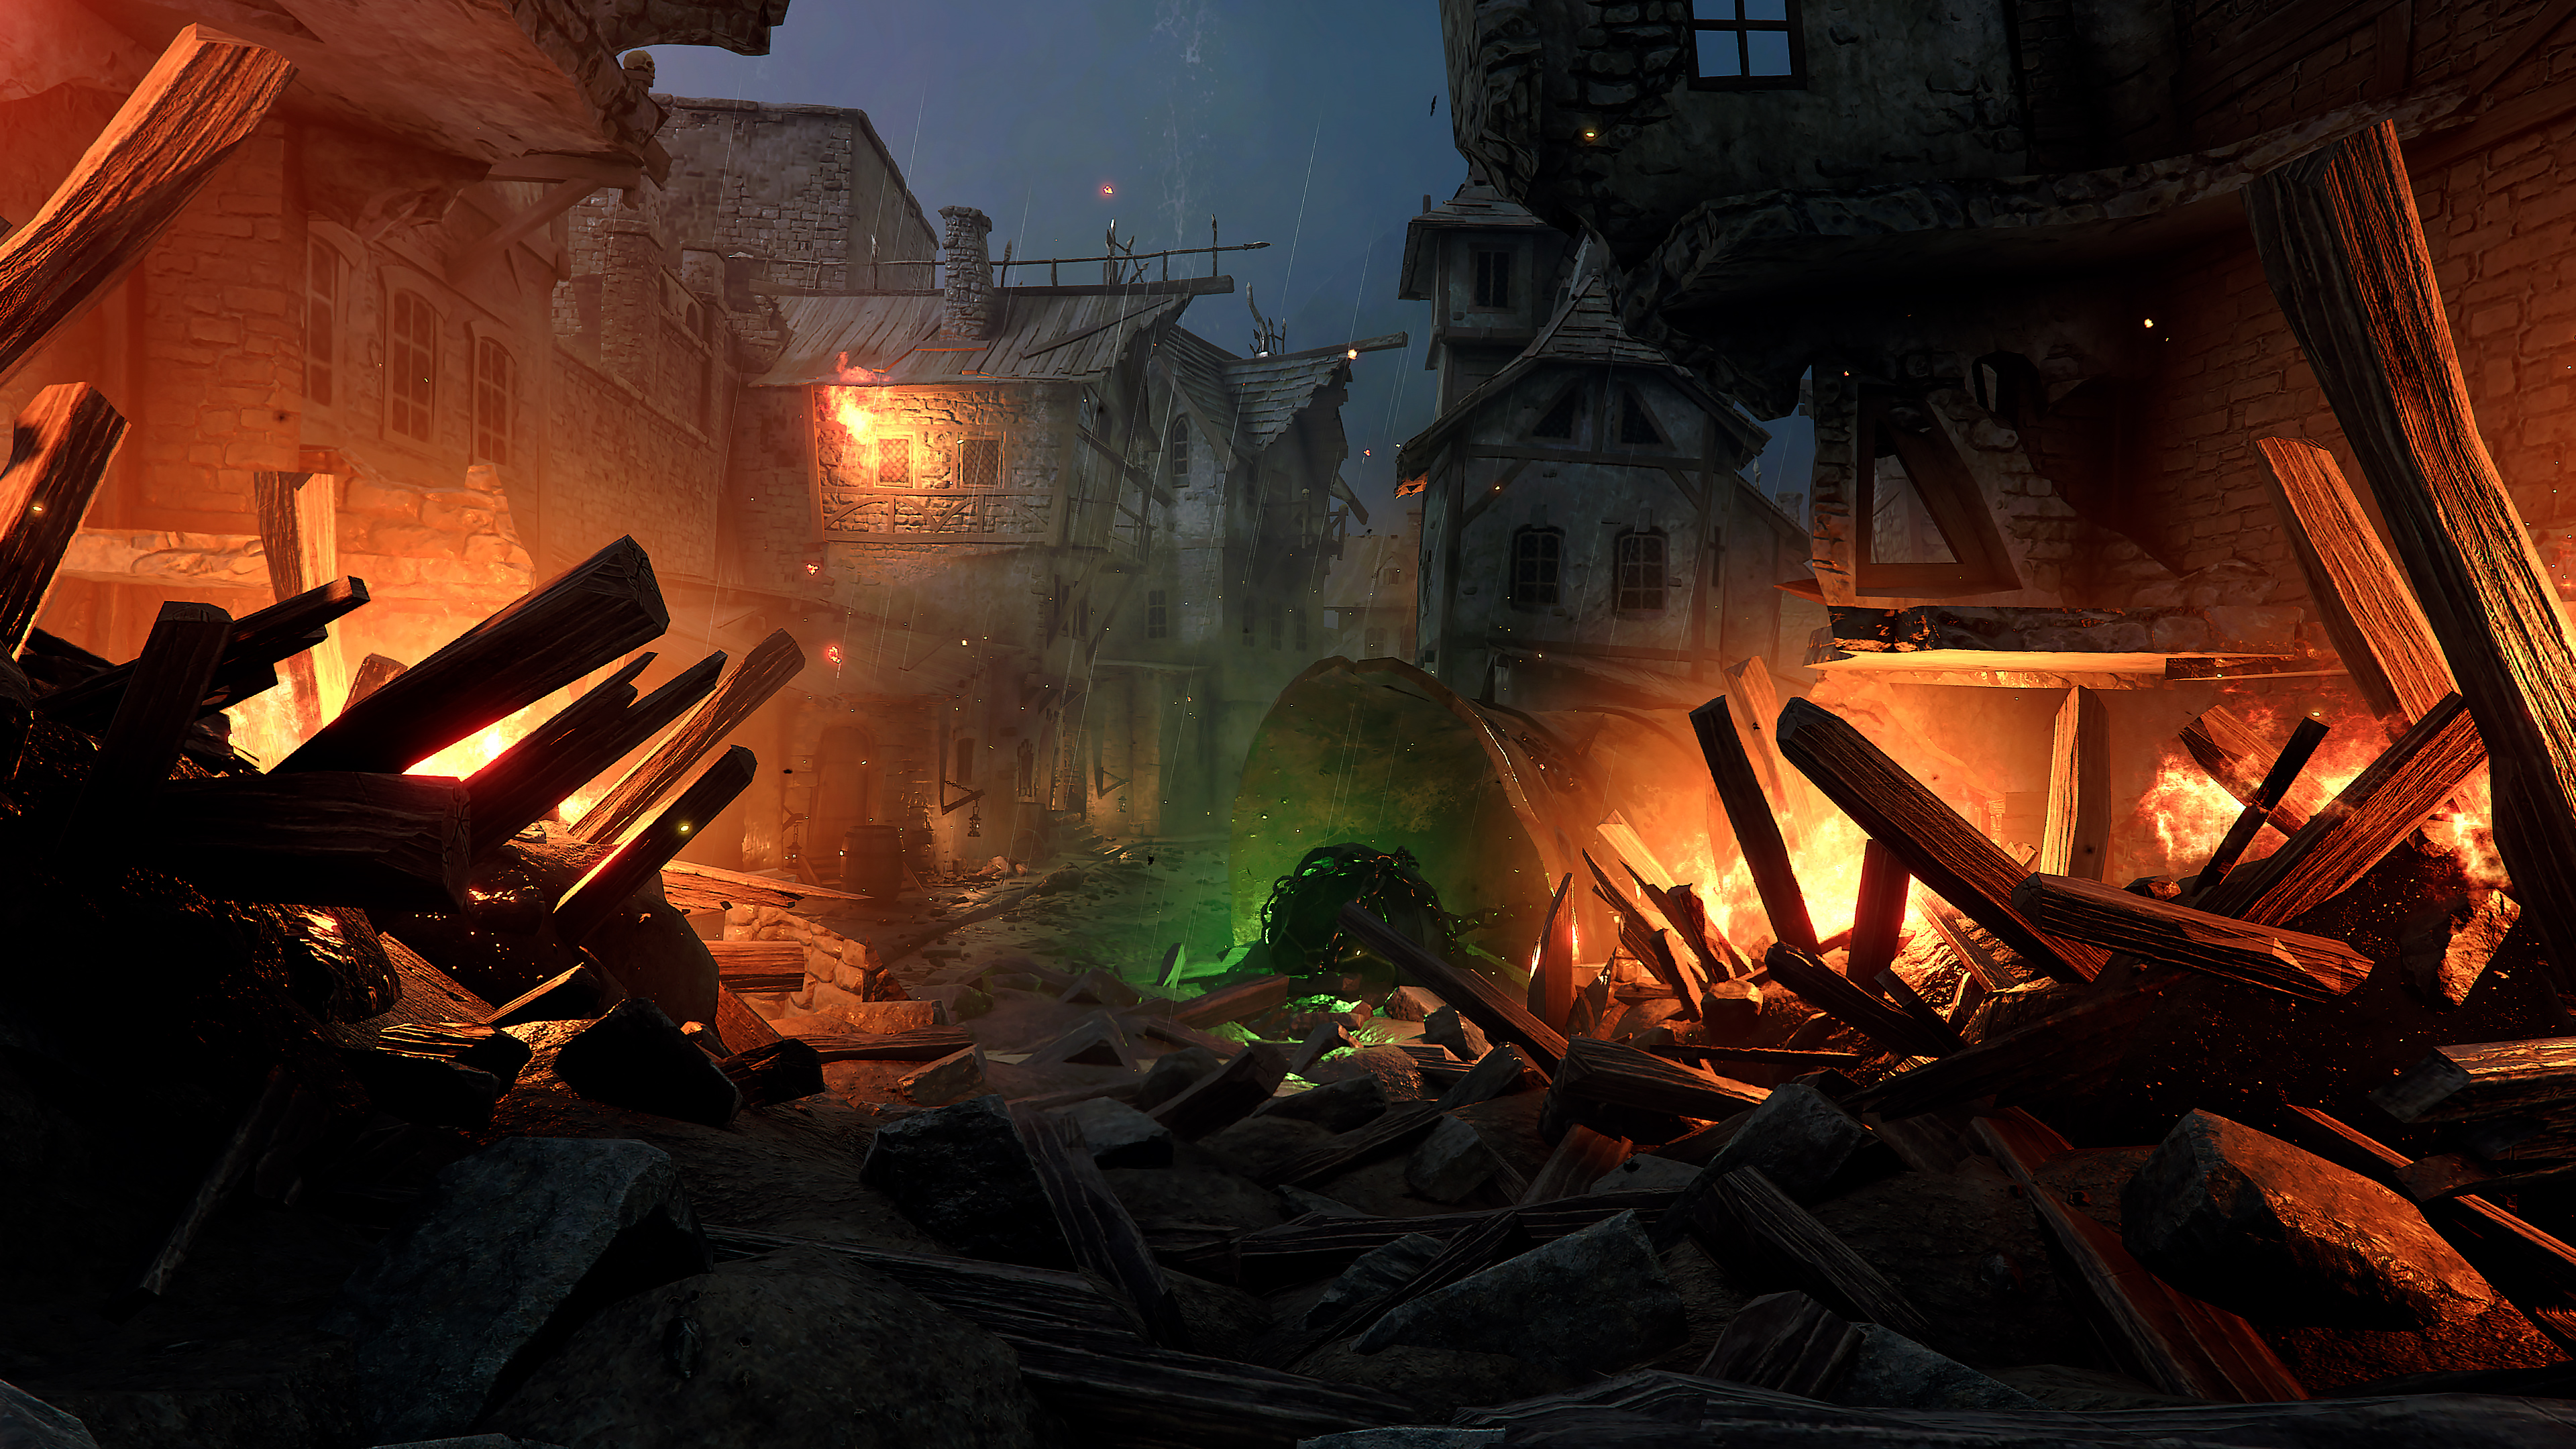 warhammer vermintide 2 1543620780 - Warhammer Vermintide 2 - warhammer vermintide 2 wallpapers, hd-wallpapers, games wallpapers, 4k-wallpapers, 2018 games wallpapers